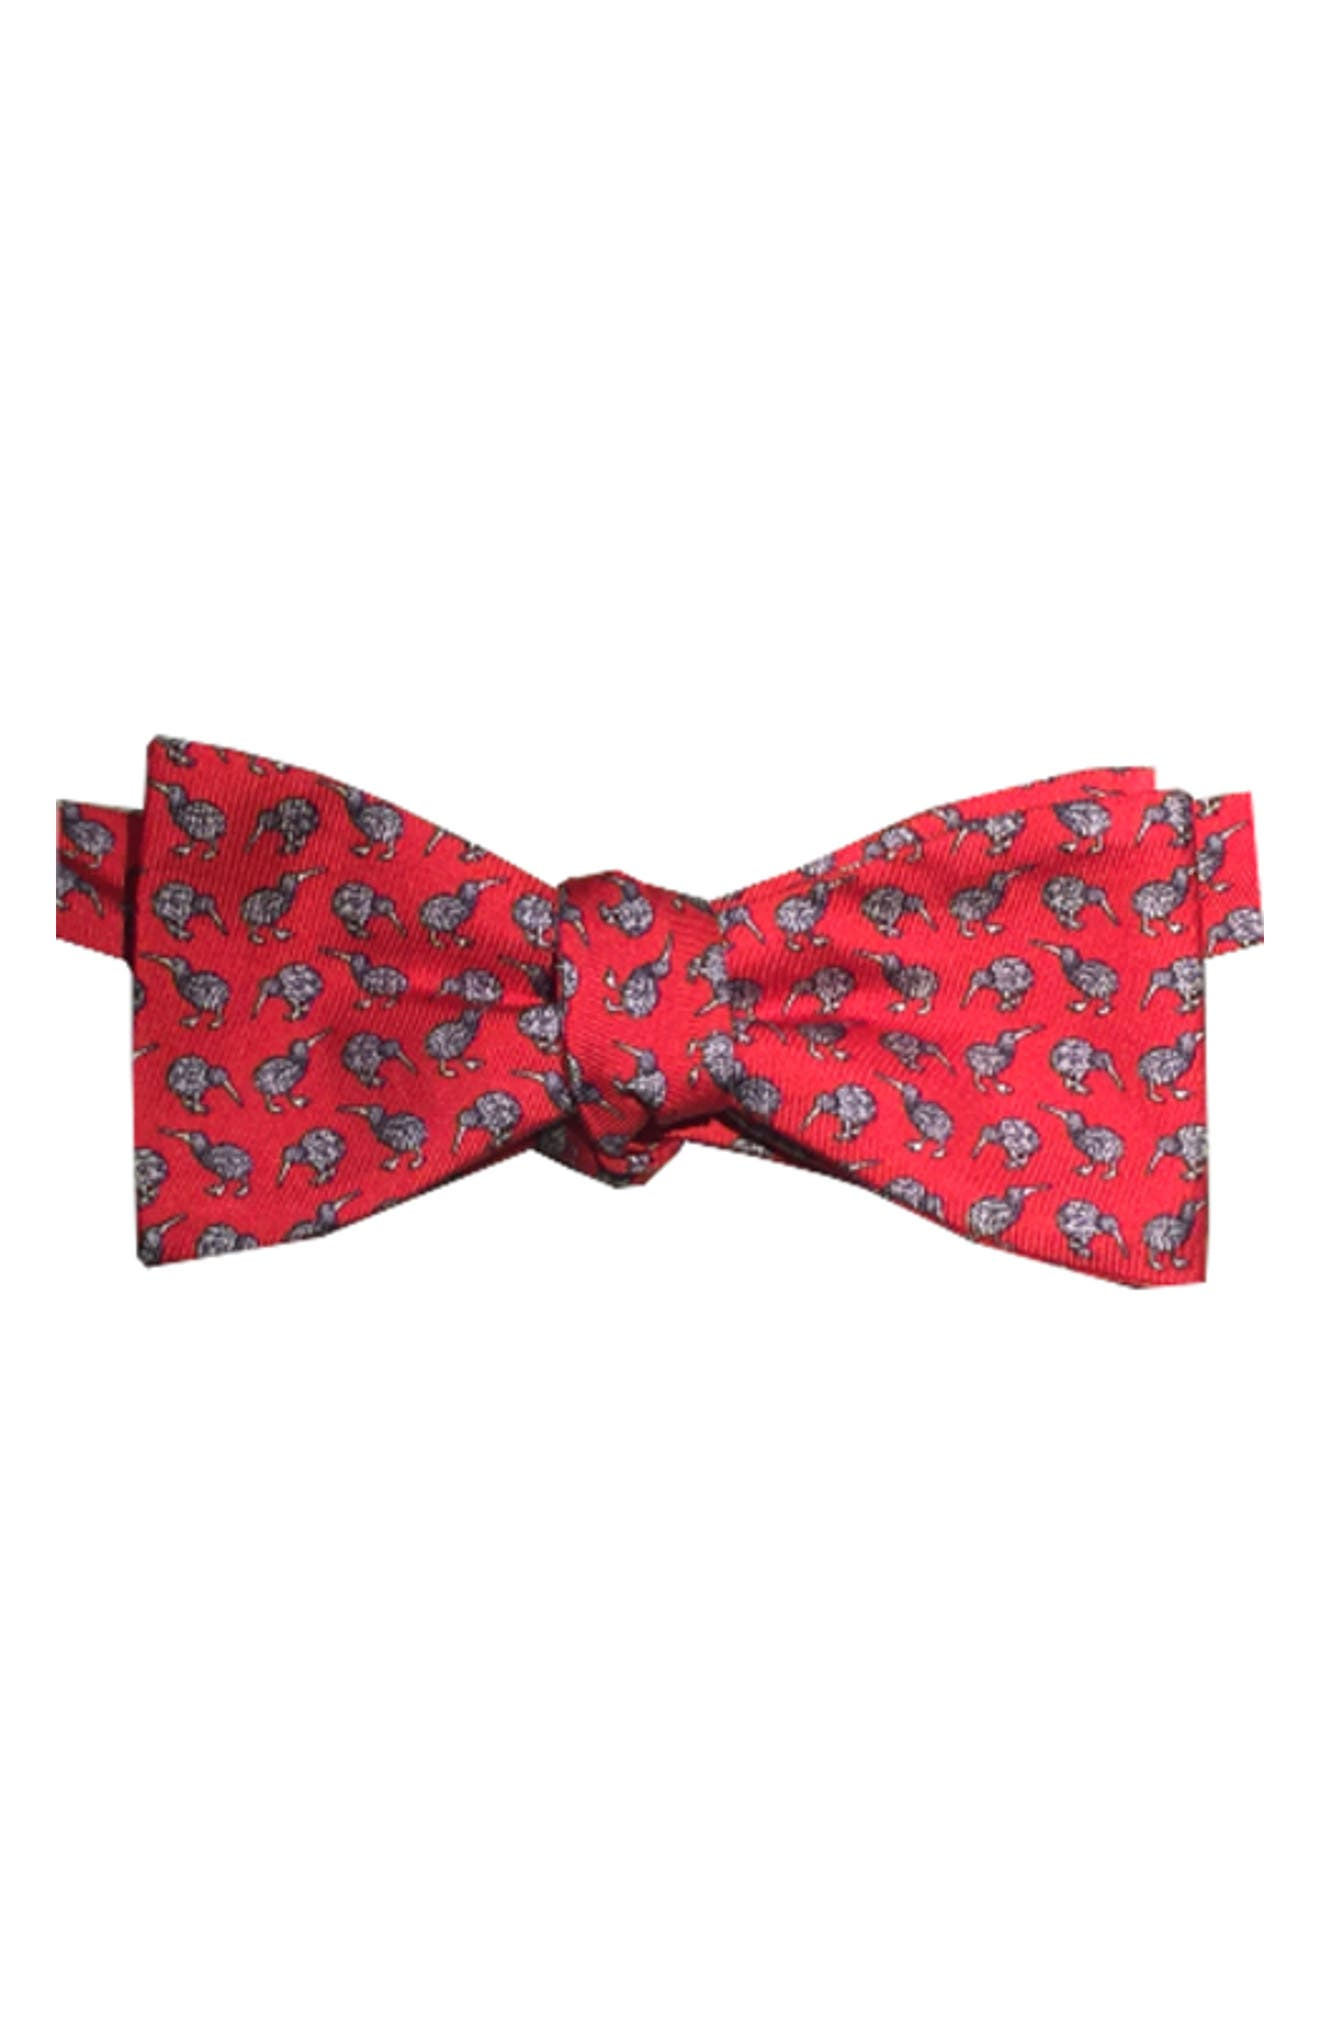 Cheeky Kiwi Silk Bow Tie,                         Main,                         color, Red